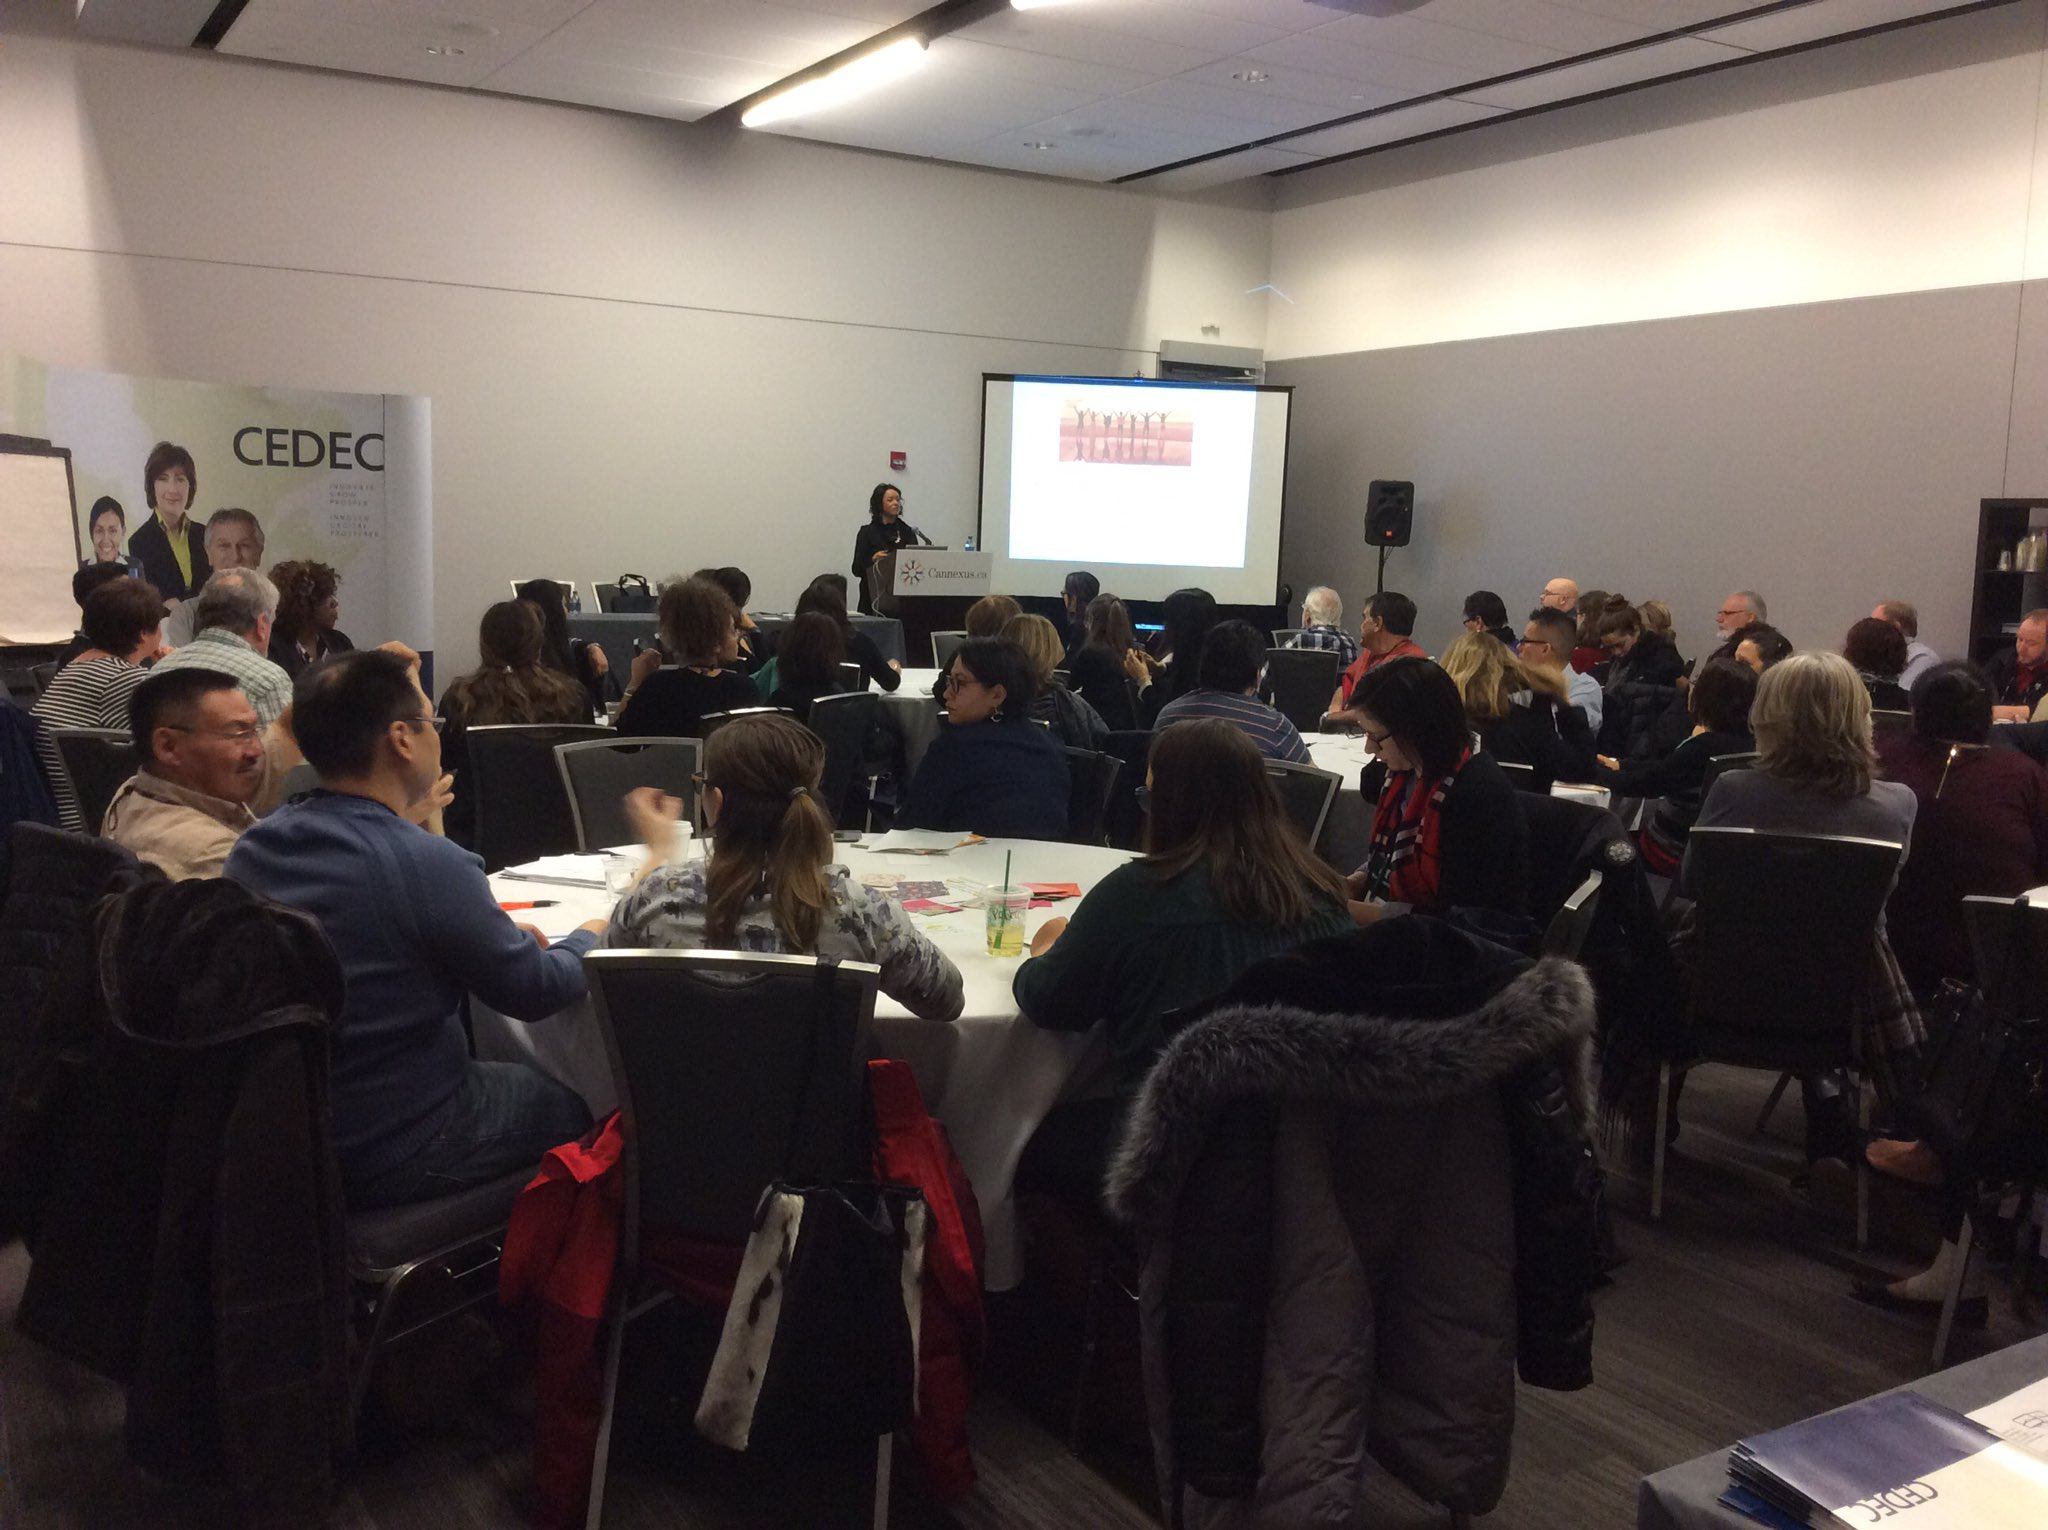 #Cannexus17 day 2 starting off  w/ @maher_trina looking at buidling bridges w/ indigenous talent #fullhouse #diversityengagement @CEDEC_QC https://t.co/wt6HkI6Frq